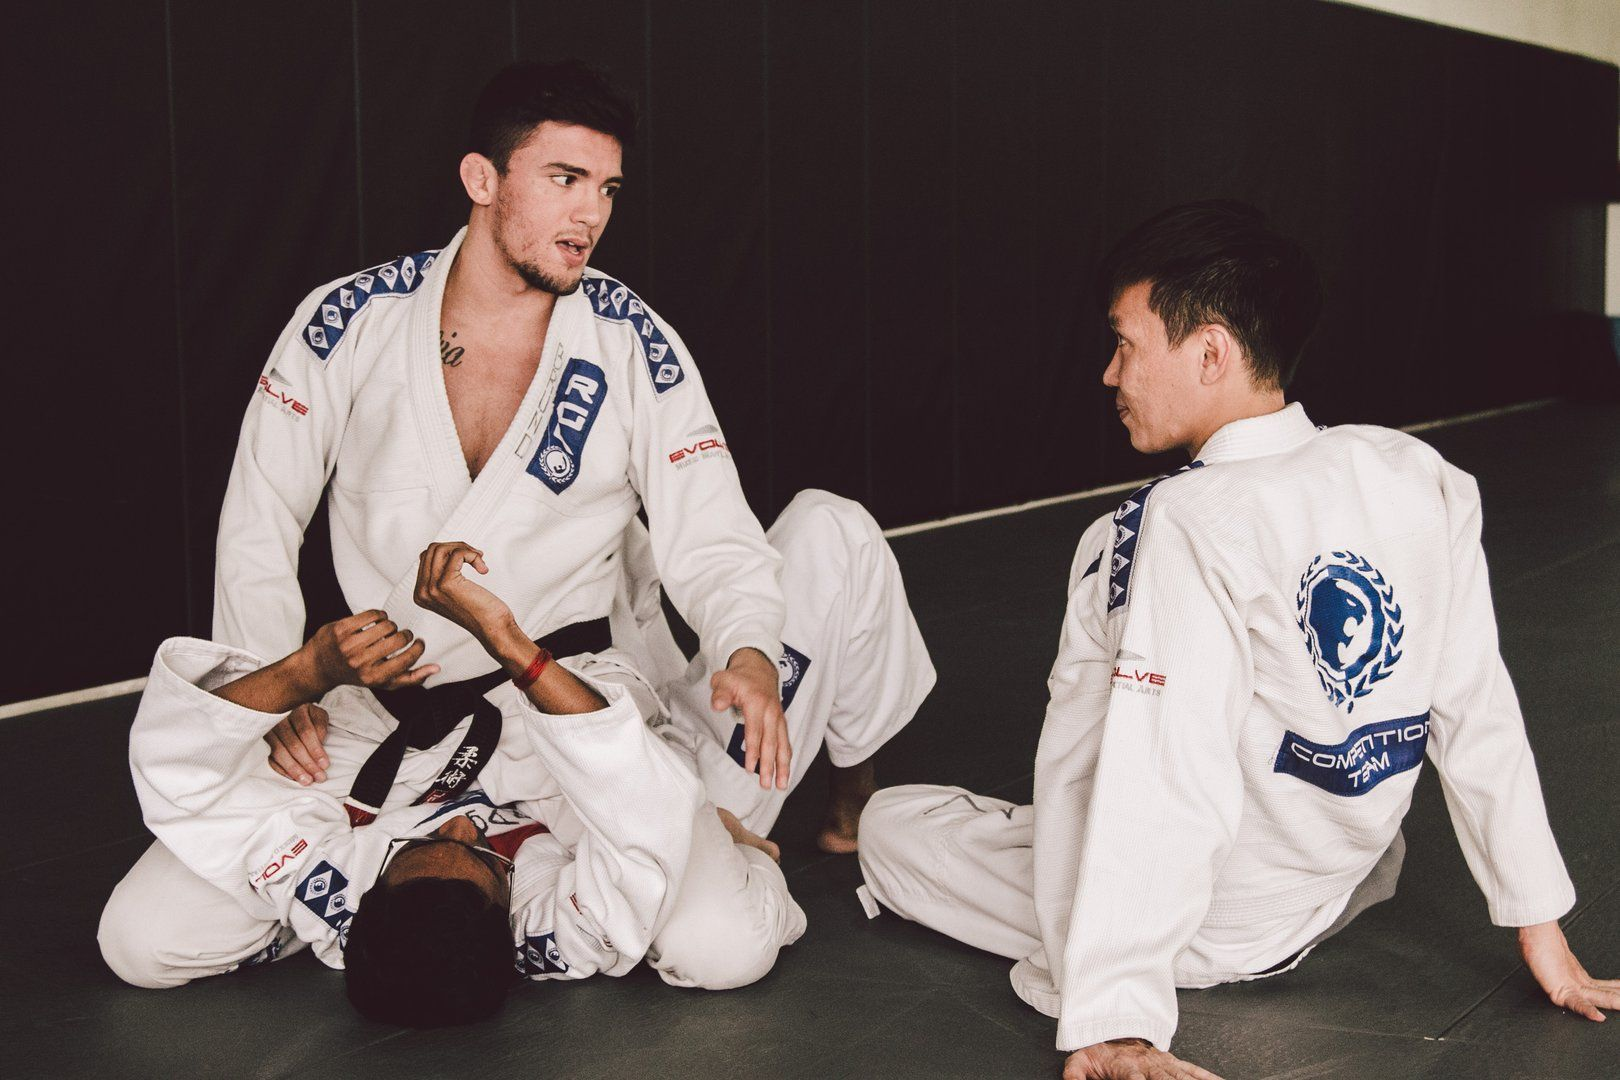 ONE Superstar Bruno Pucci teaches BJJ at Evolve MMA.